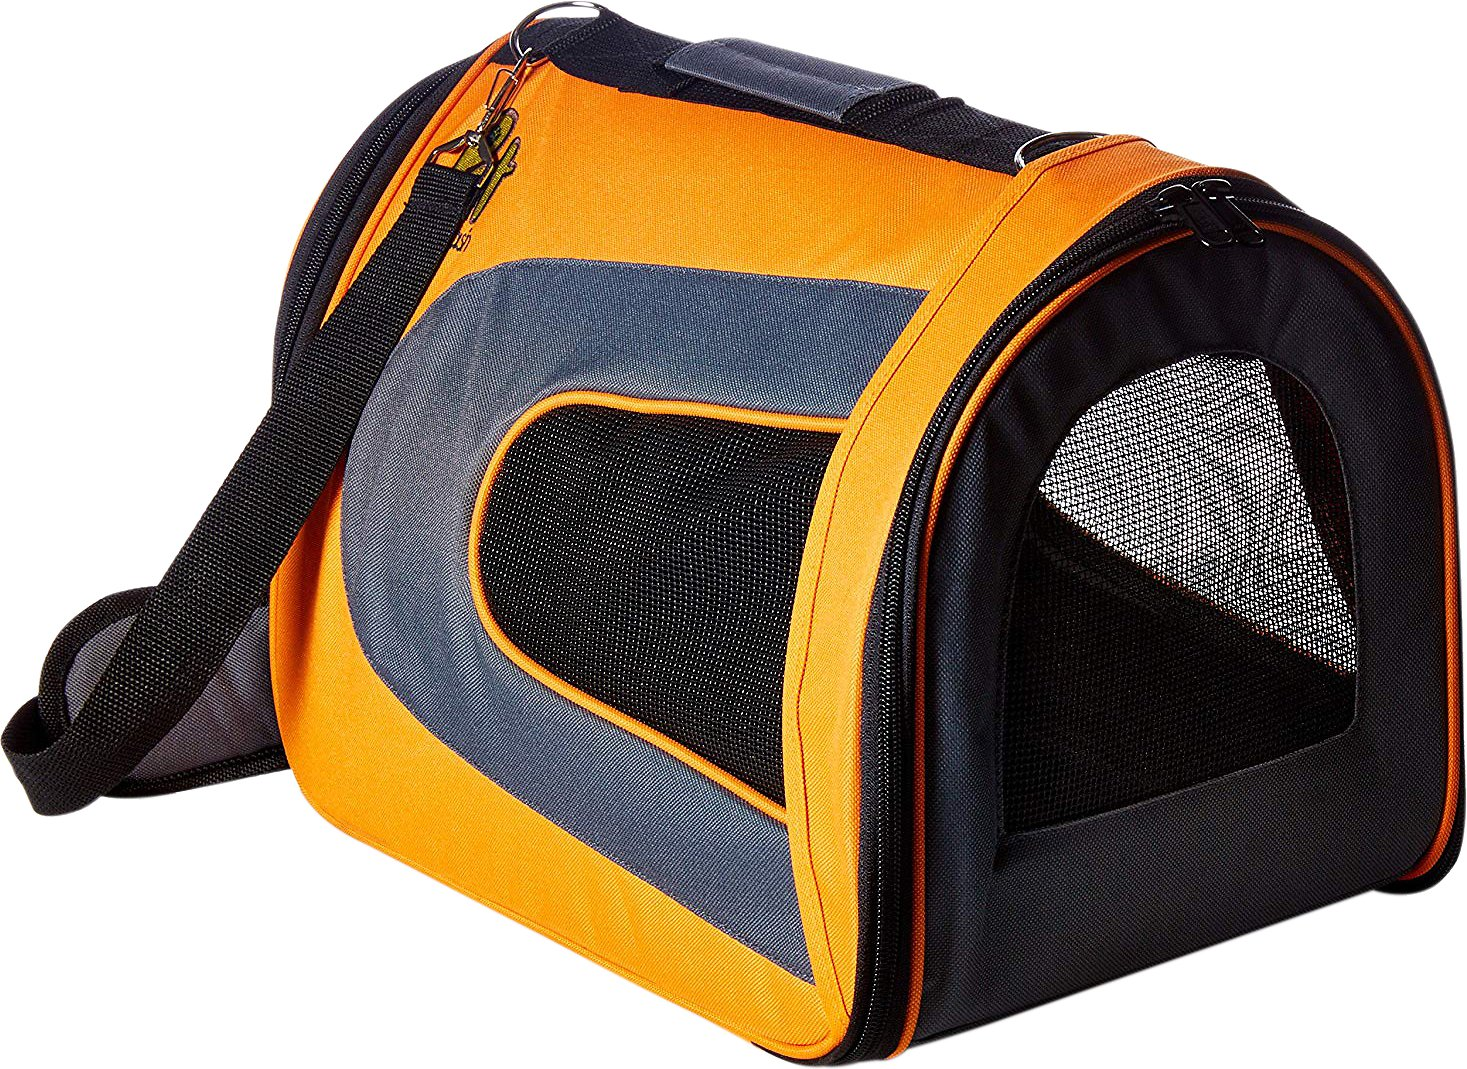 d0403c6c554 Pet Magasin Soft Sided Airline-Approved Dog & Cat Travel Carrier ...